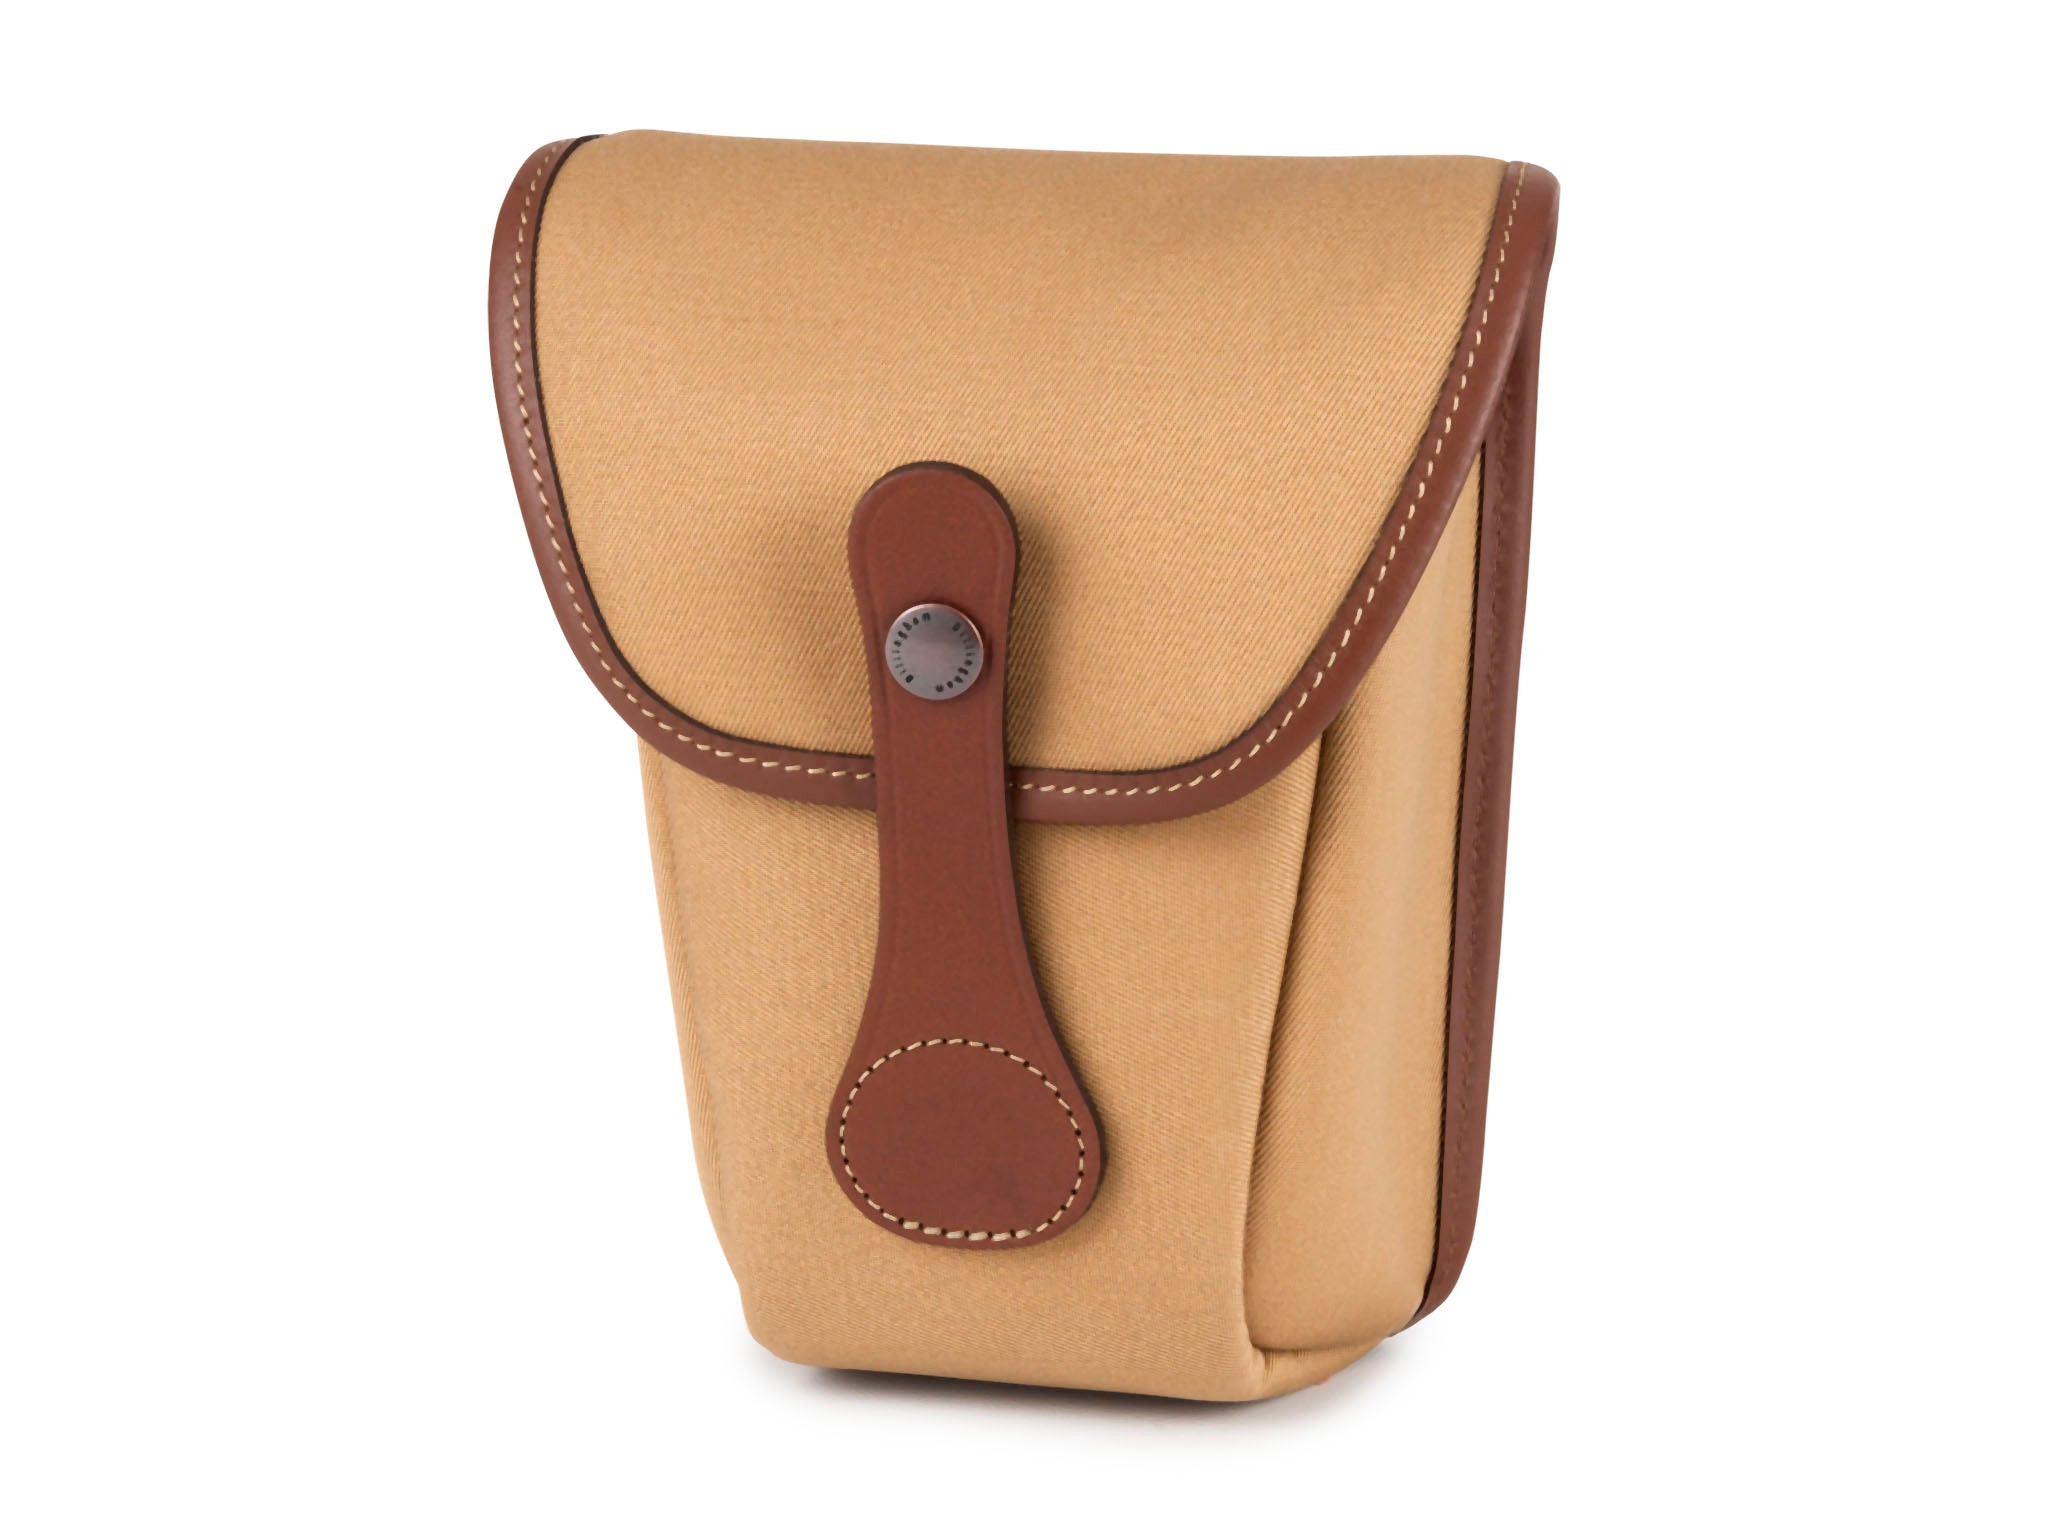 BILLINGHAM_AVEA_8_KHAKI_CANVAS-TAN_LEATHER_FRONT_10_CROP1.jpg